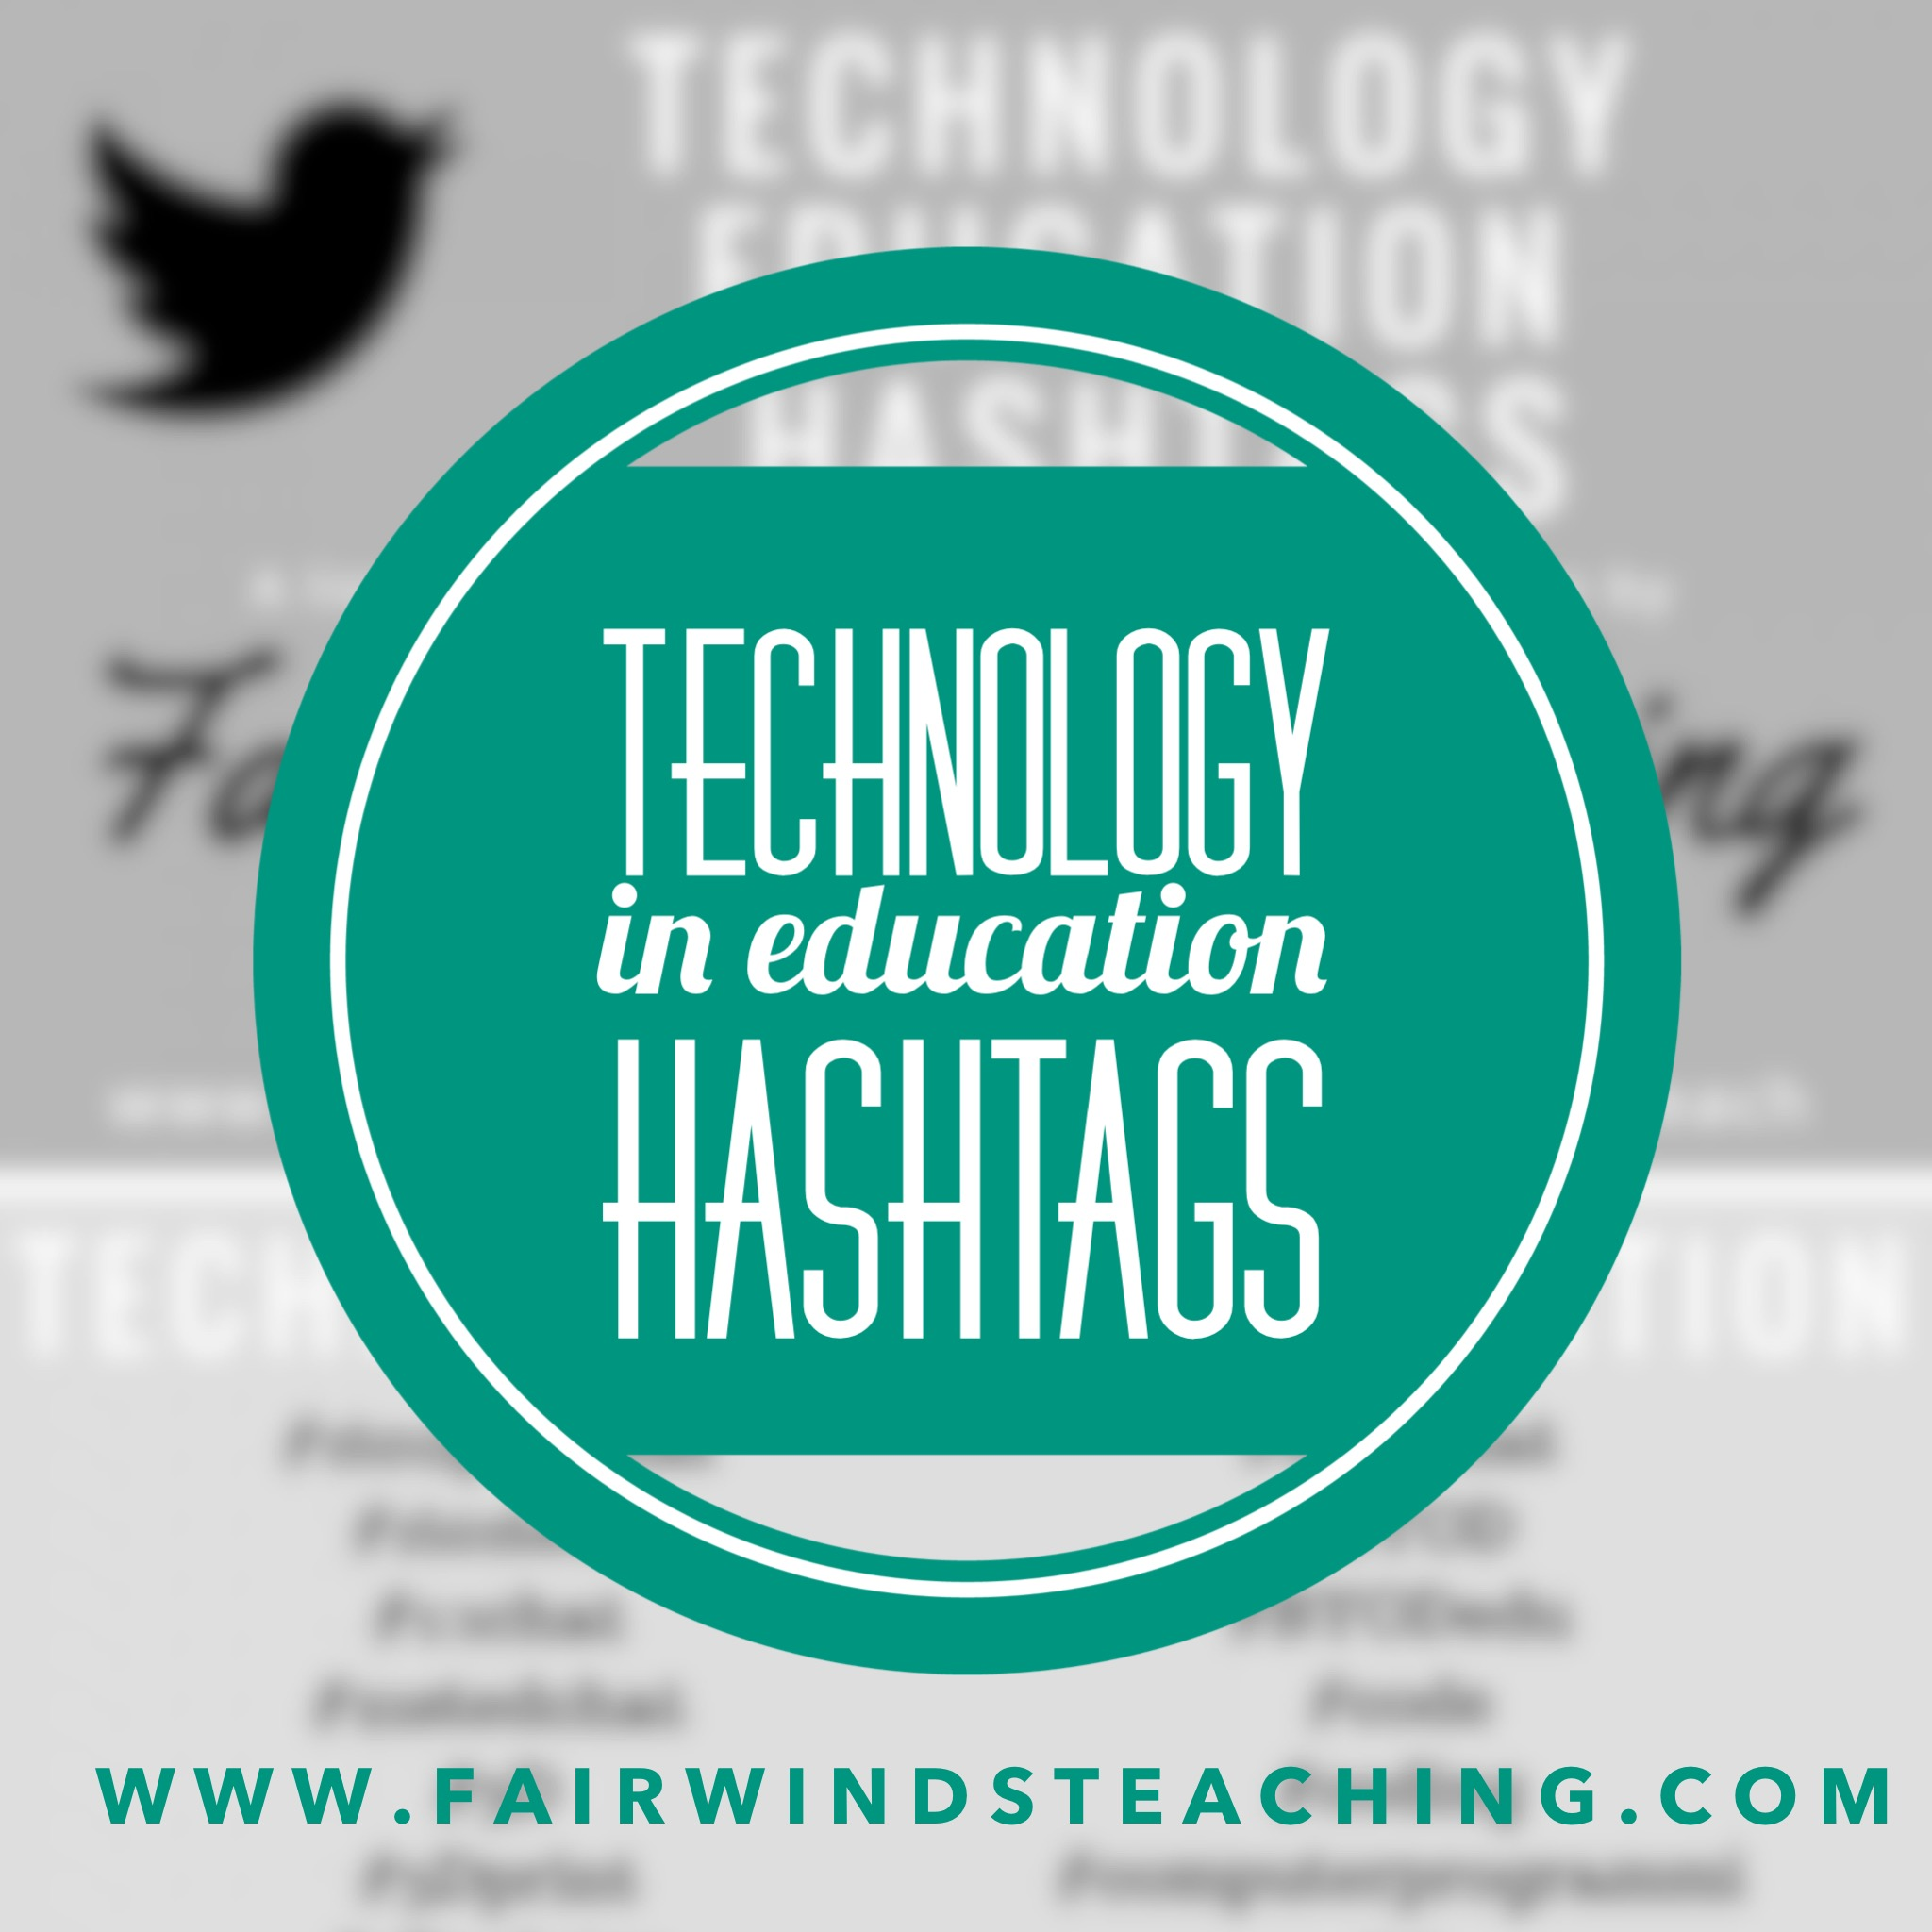 Technology in Education Hashtags